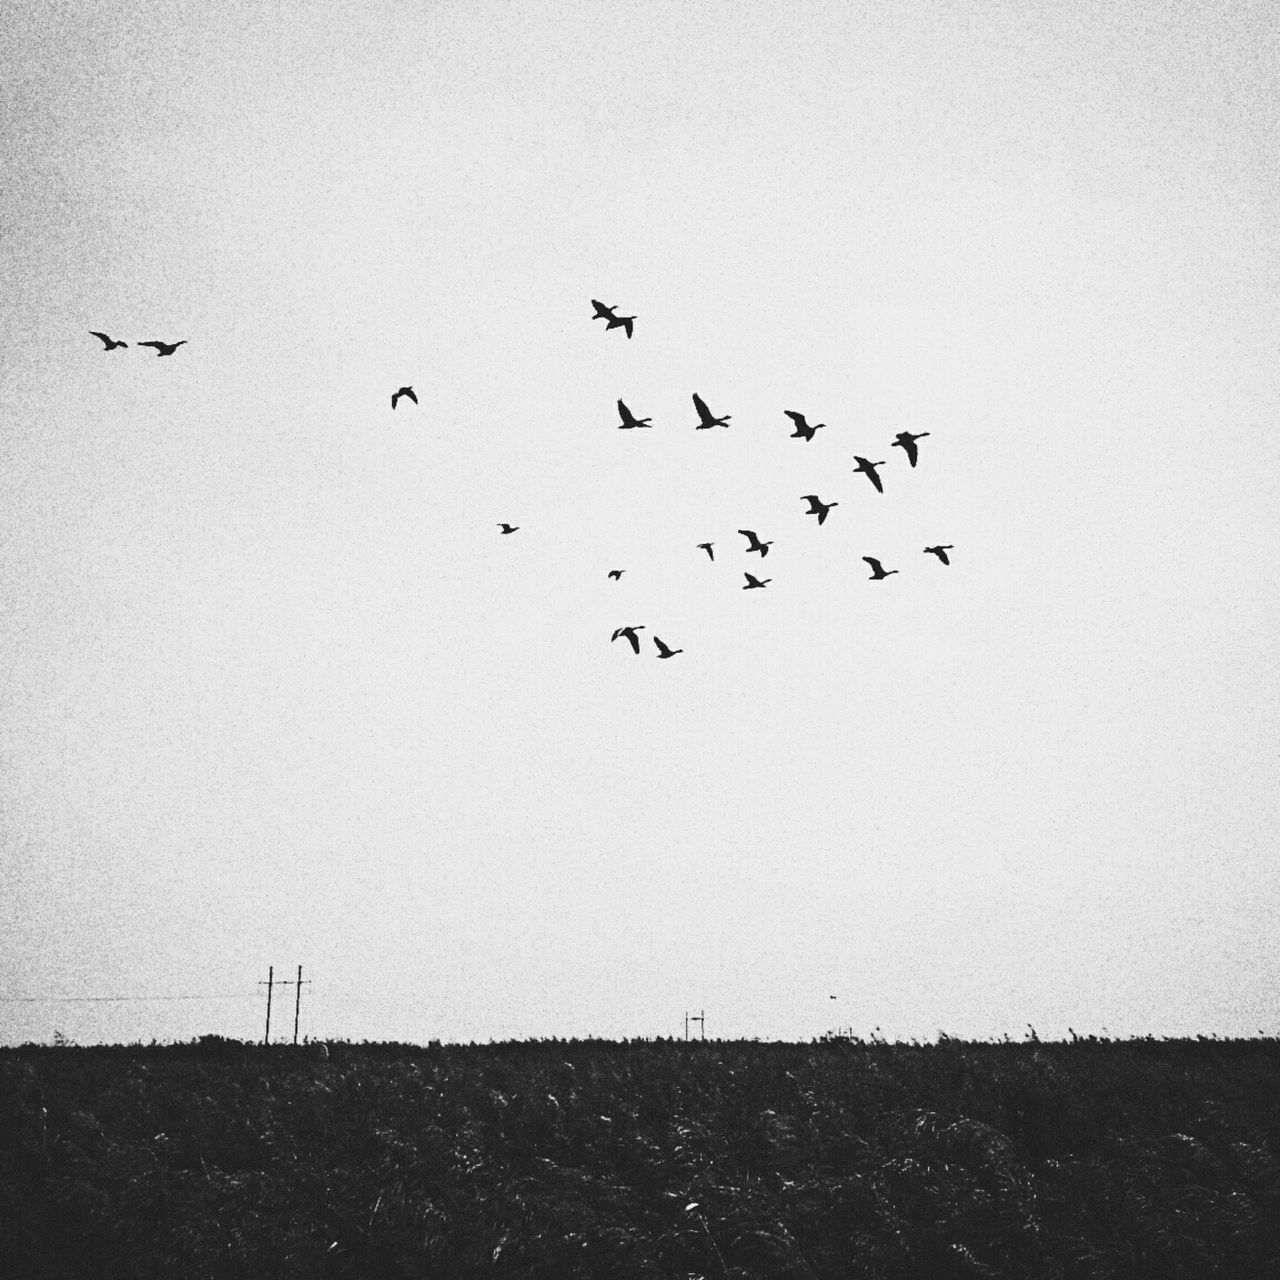 Showcase: December The Moment - 2015 EyeEm Awards EyeEm Gallery Enjoying Life Getting Fresh Go Back To Home EyeEm Birds Fly To The Sky Winter Is Coming Friends Mandy Nature_collection Blackandwhite Photography Phone Photography